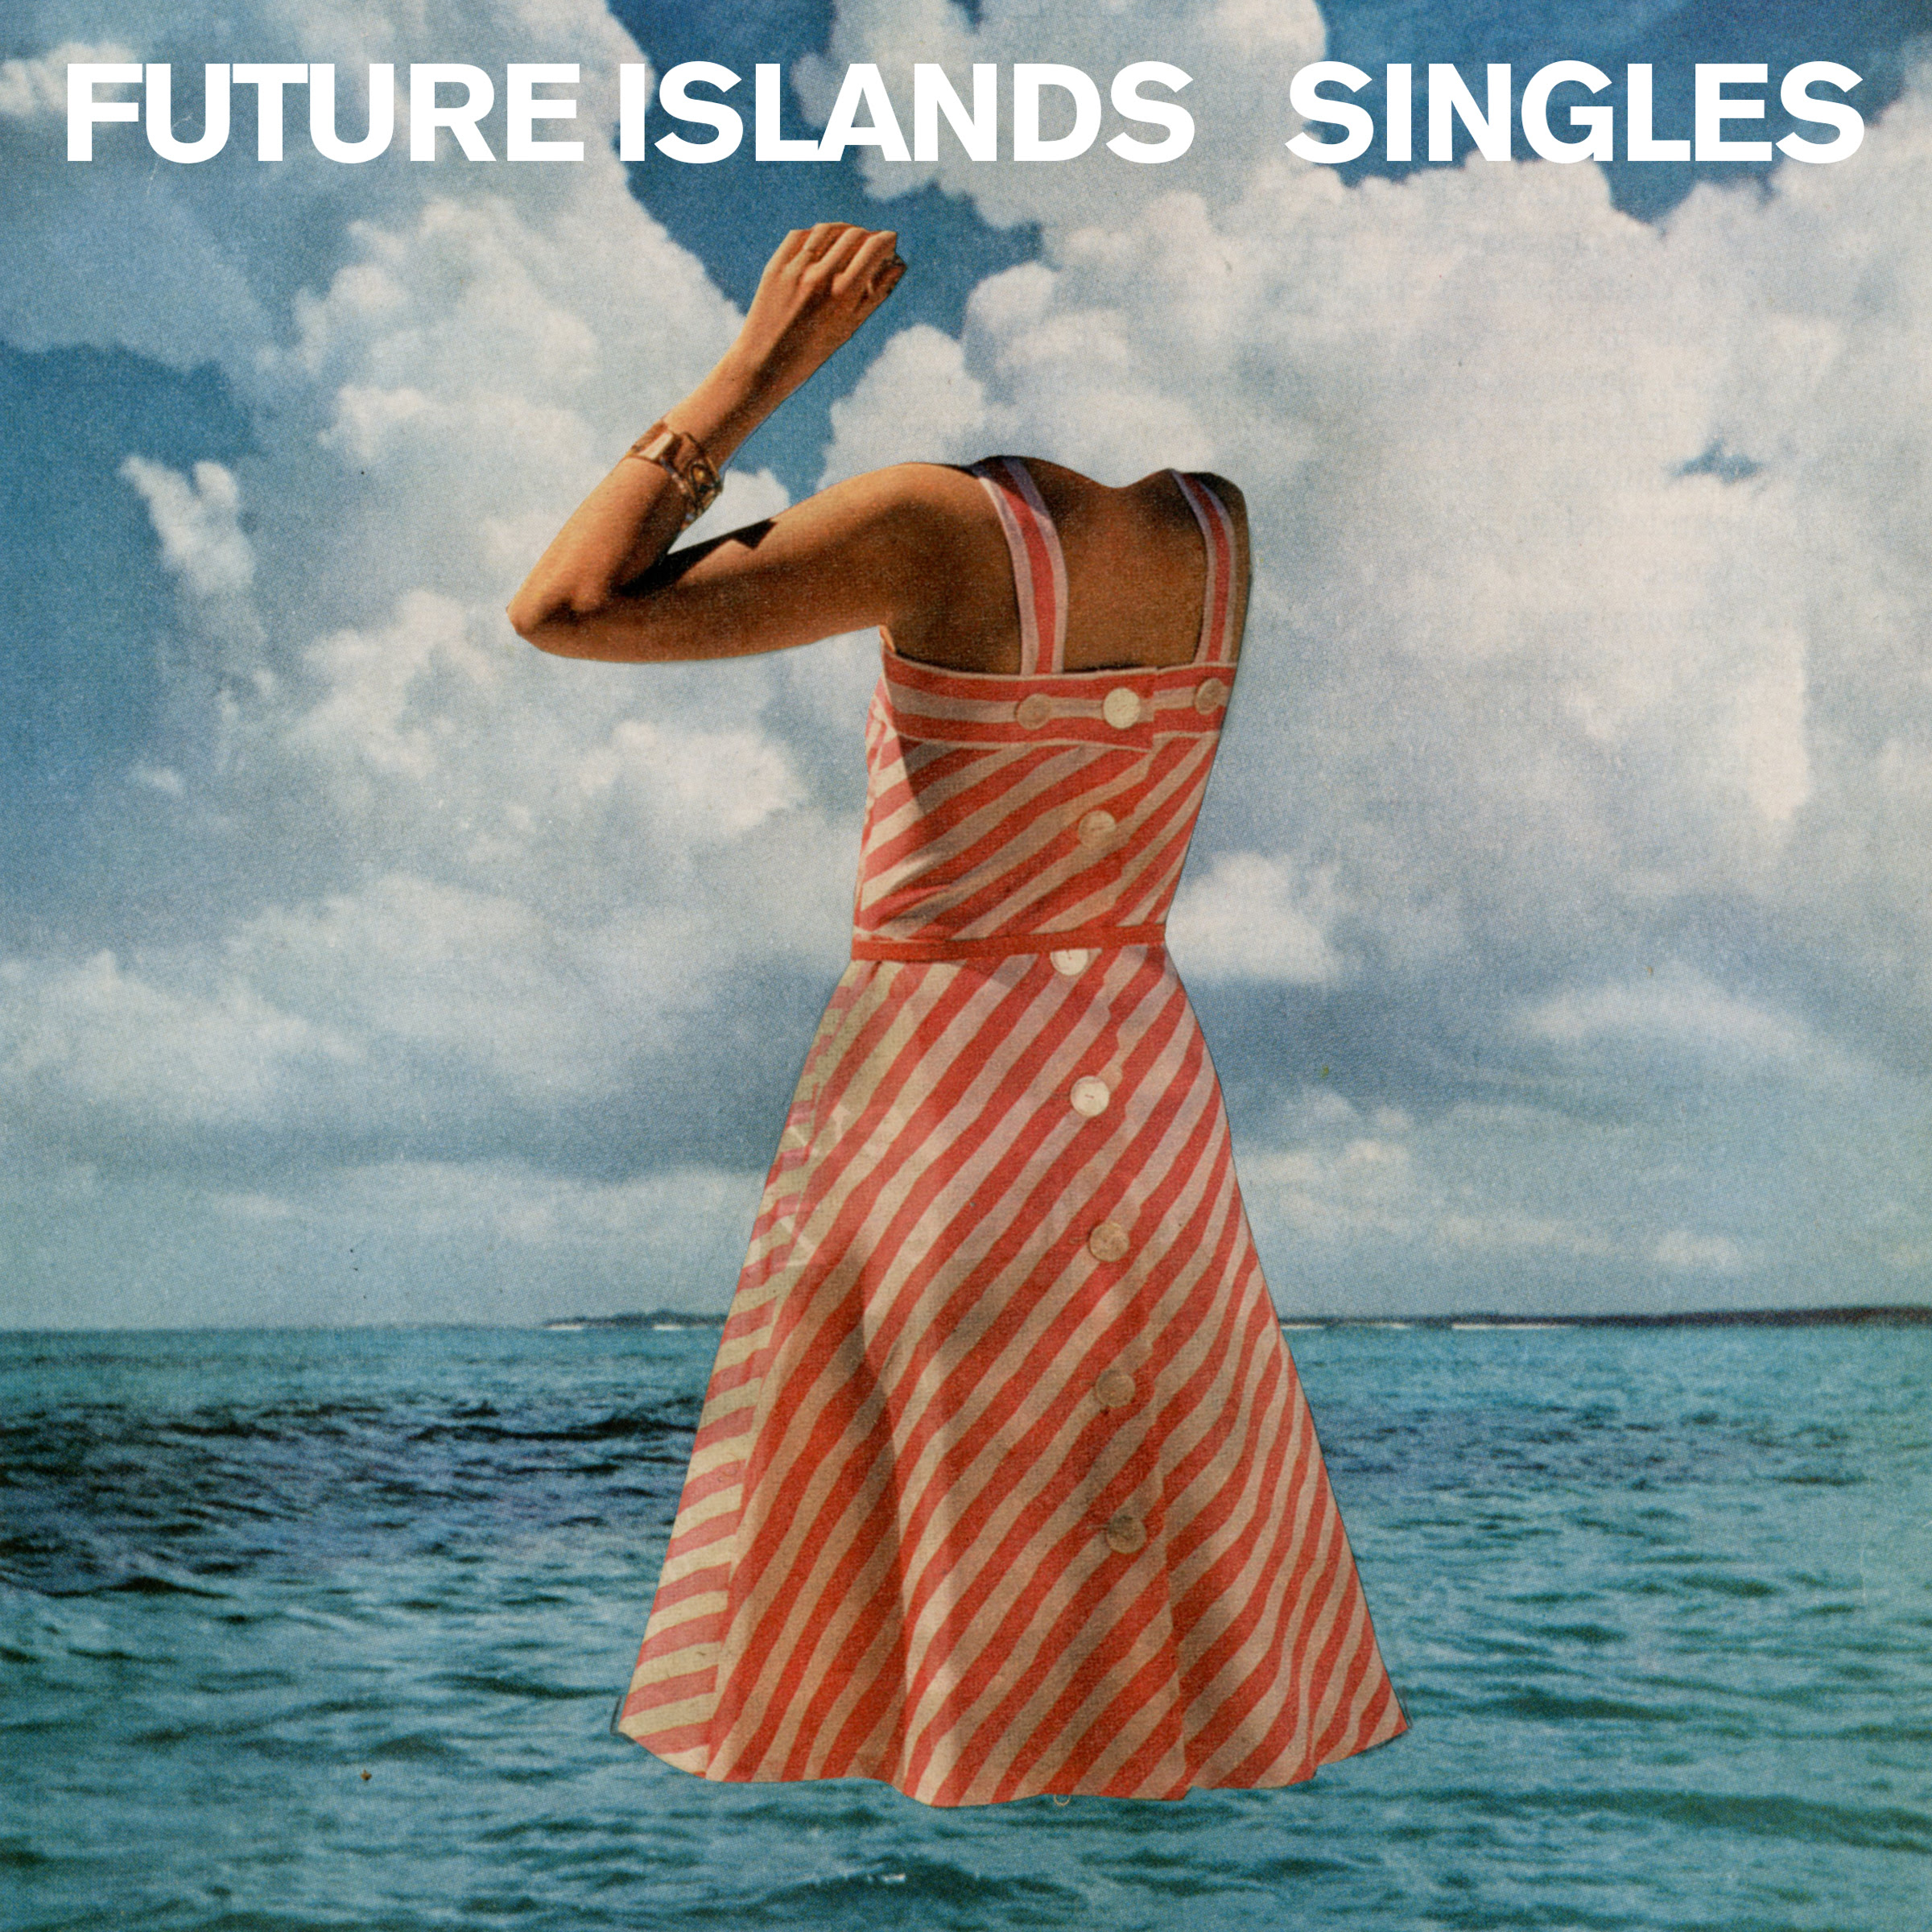 Future Islands  Singles   KEVIN: Buy It PAUL: Pass MADELYN: Stream It ADAM: Pass  Listen on:  Rdio  |  Spotify